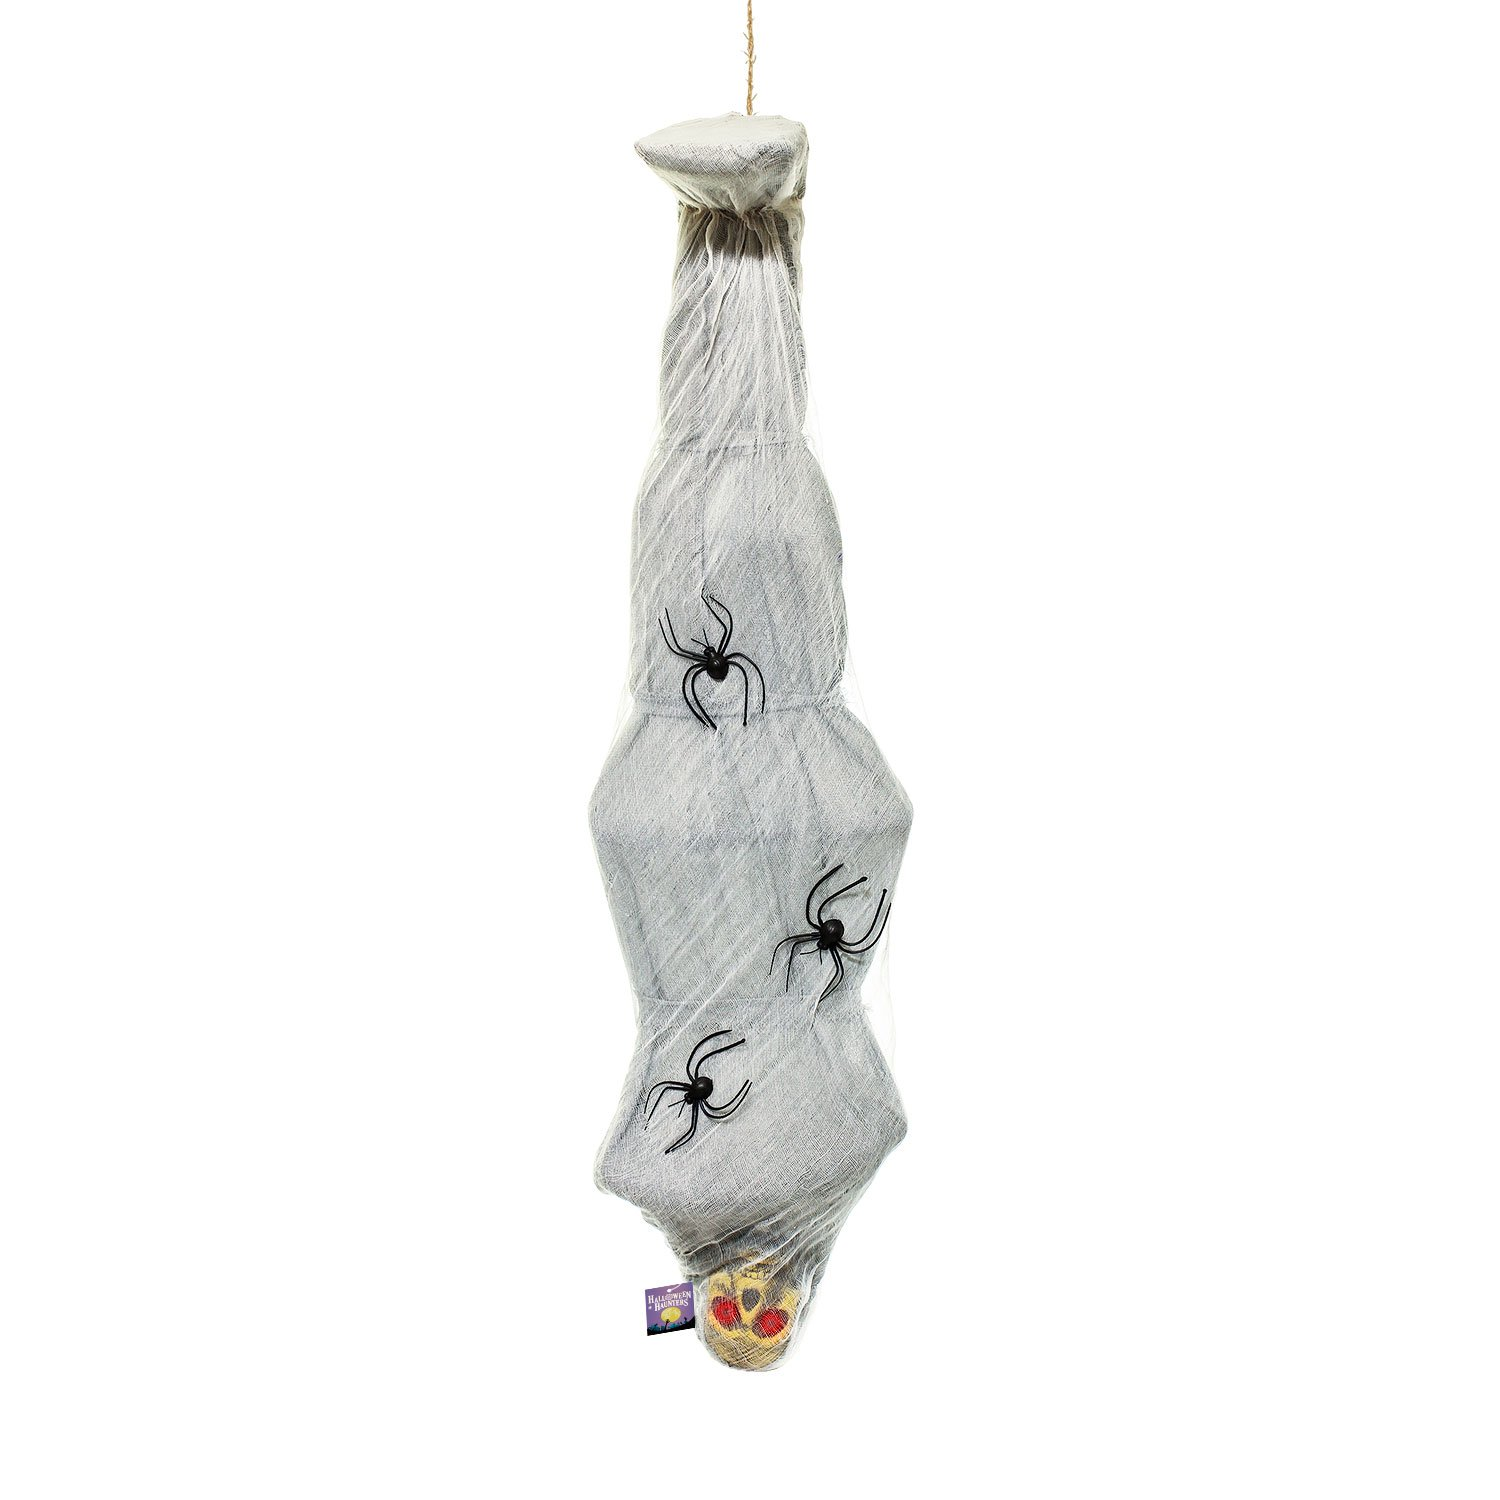 Halloween Haunters Hanging 66'' Animated Skeleton Body Inside Cocoon Spider Web Prop Decoration - Shaking Body & Red Light-Up Eyes (Battery Operated)